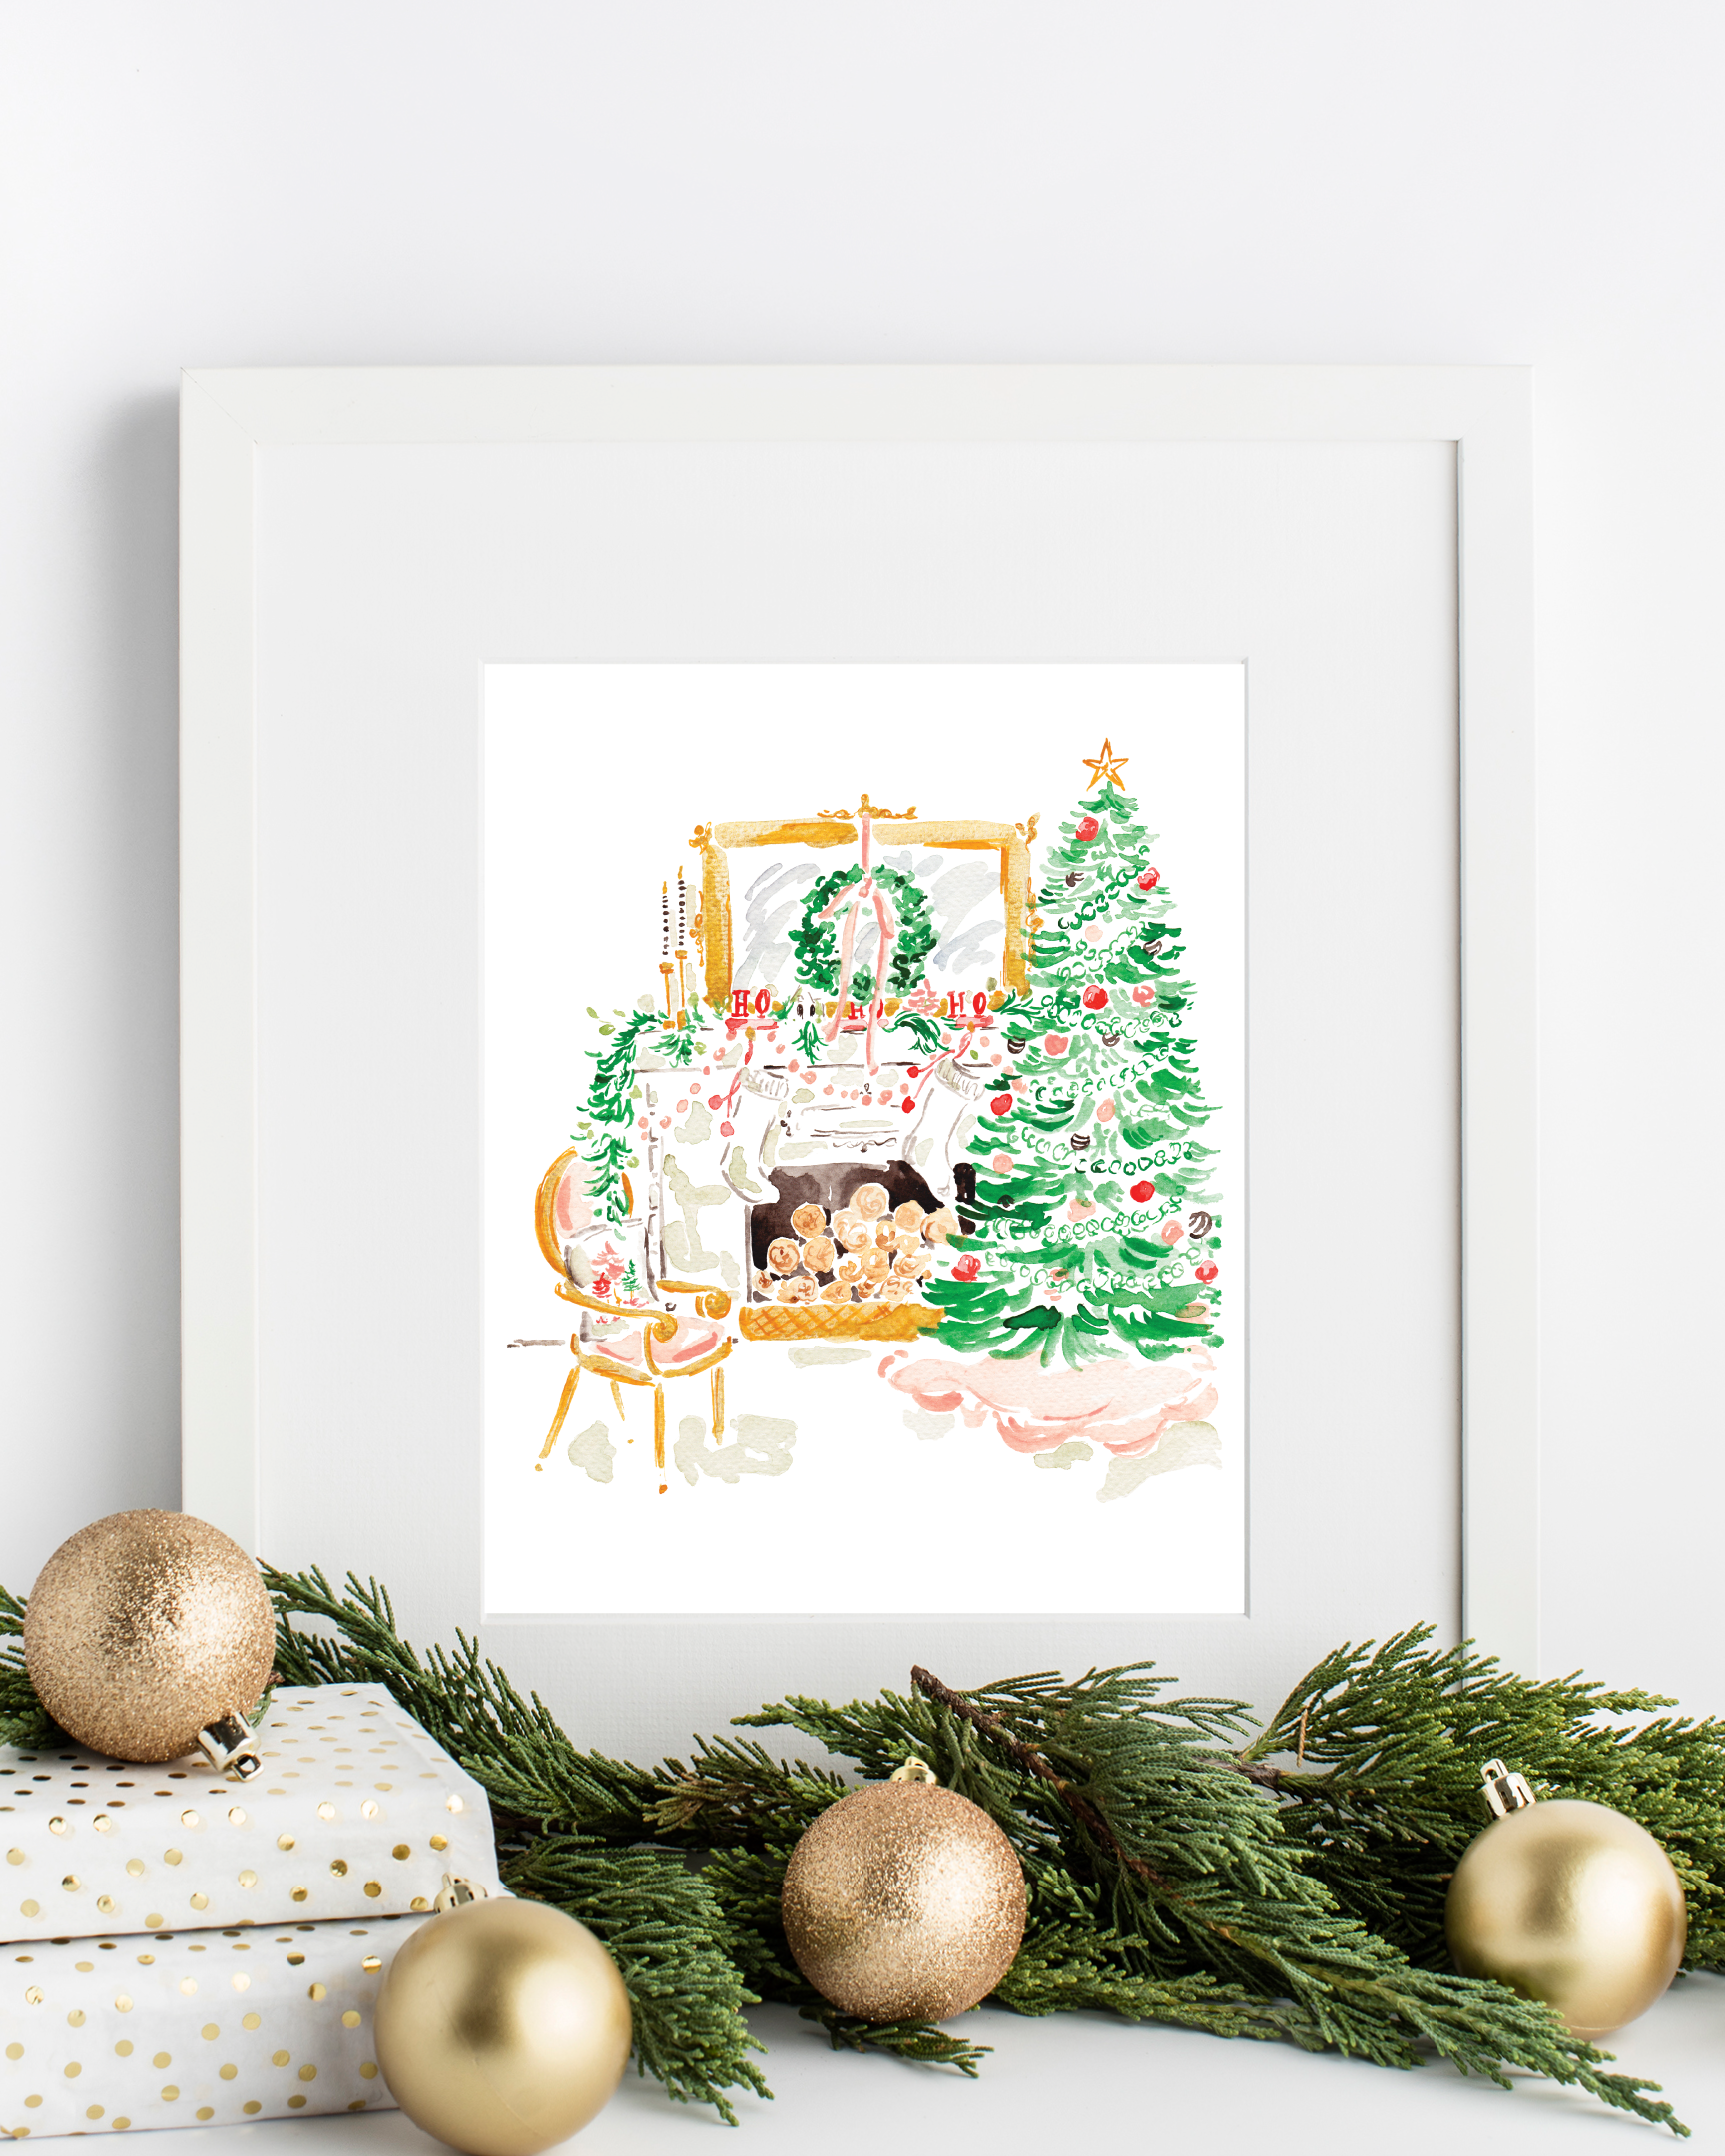 christmas-tree-living-room-scene-watercolor-art-print-by-simply-jessica-marie.png